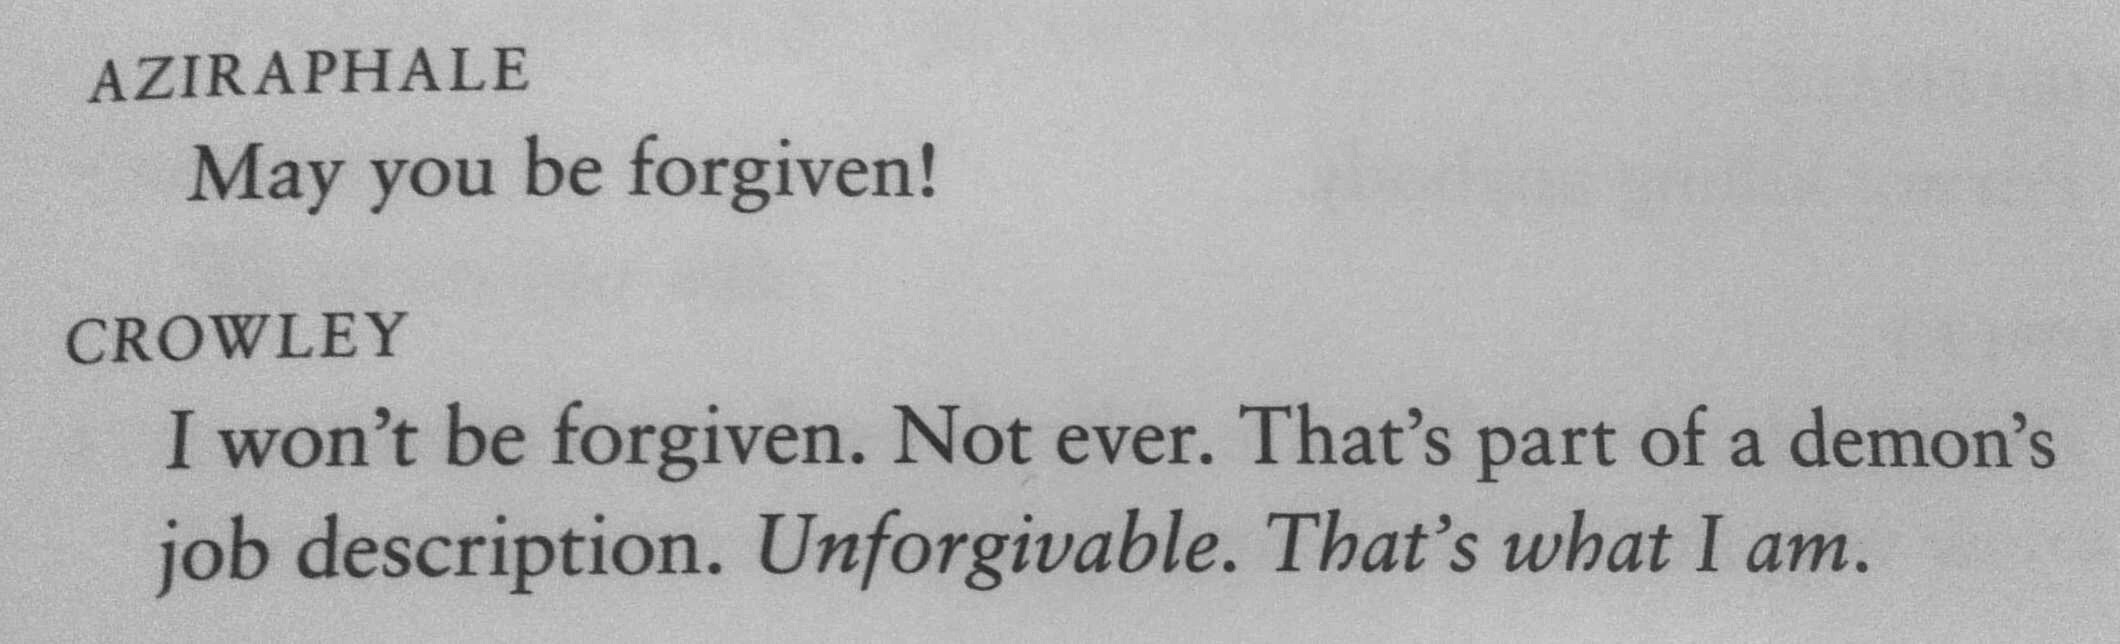 Script. Aziraphale: May you be forgiven! Crowley's answer: Unforgivable, that's what I am.